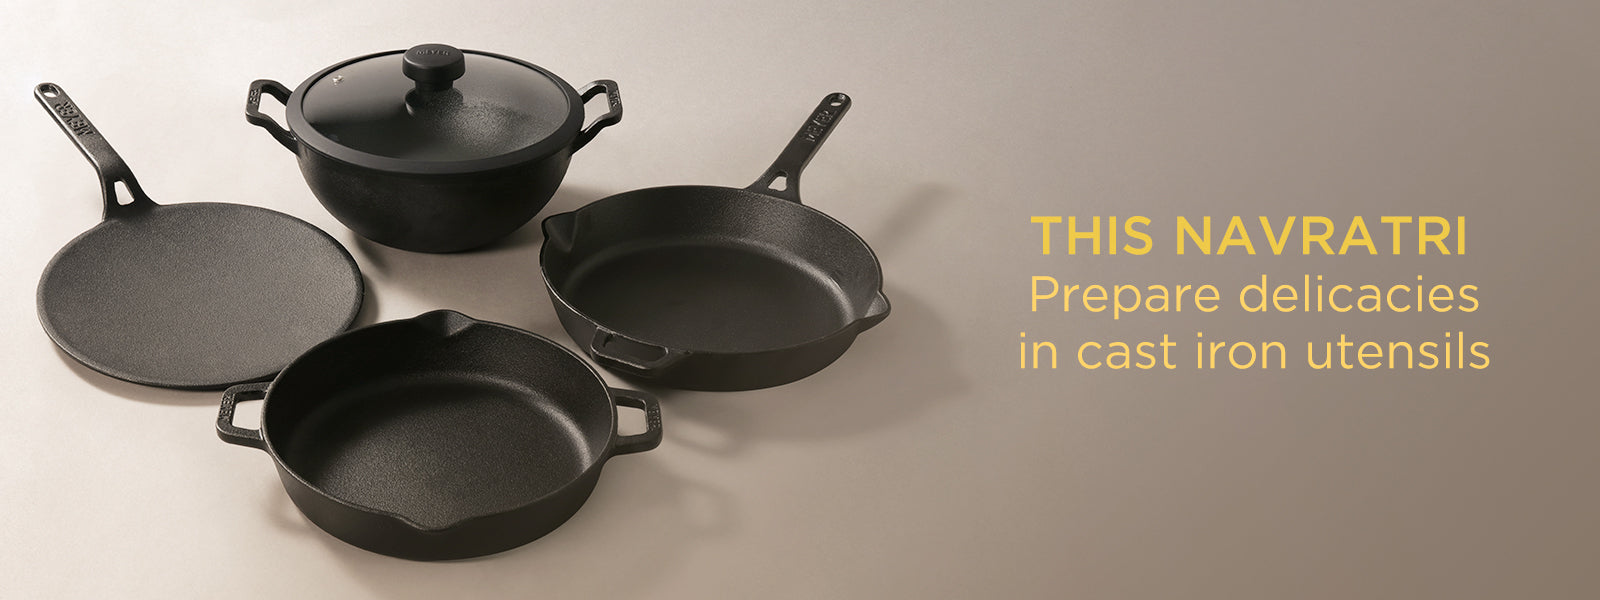 Best cookware to prepare Navratri fare